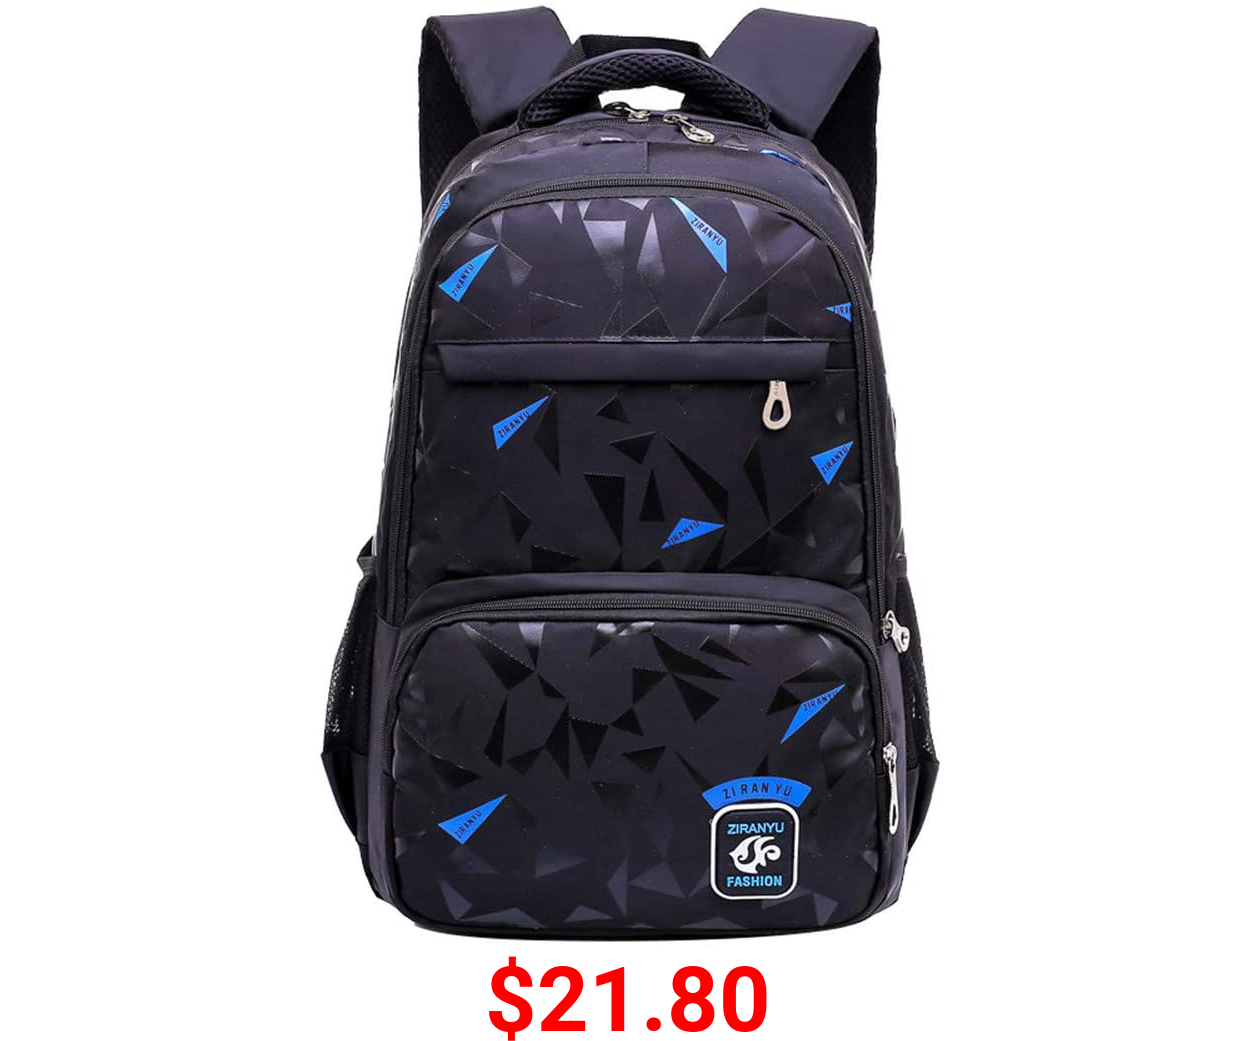 Fanci Geomatric Triangle Prints Waterproof Primary Middle School Backpack Bookbag for Elementary Boys Travel Rucksack Daypack